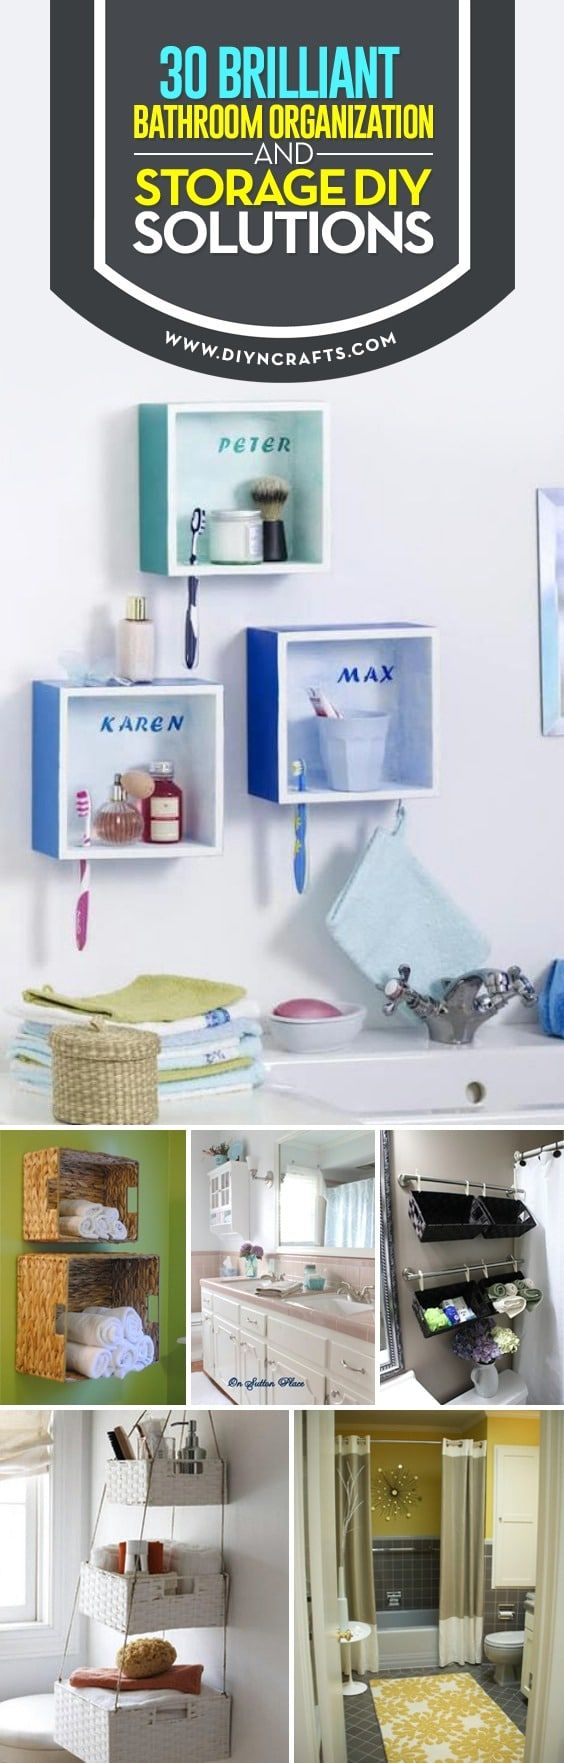 Photo of 30 Brilliant Bathroom Organization and Storage DIY Solutions